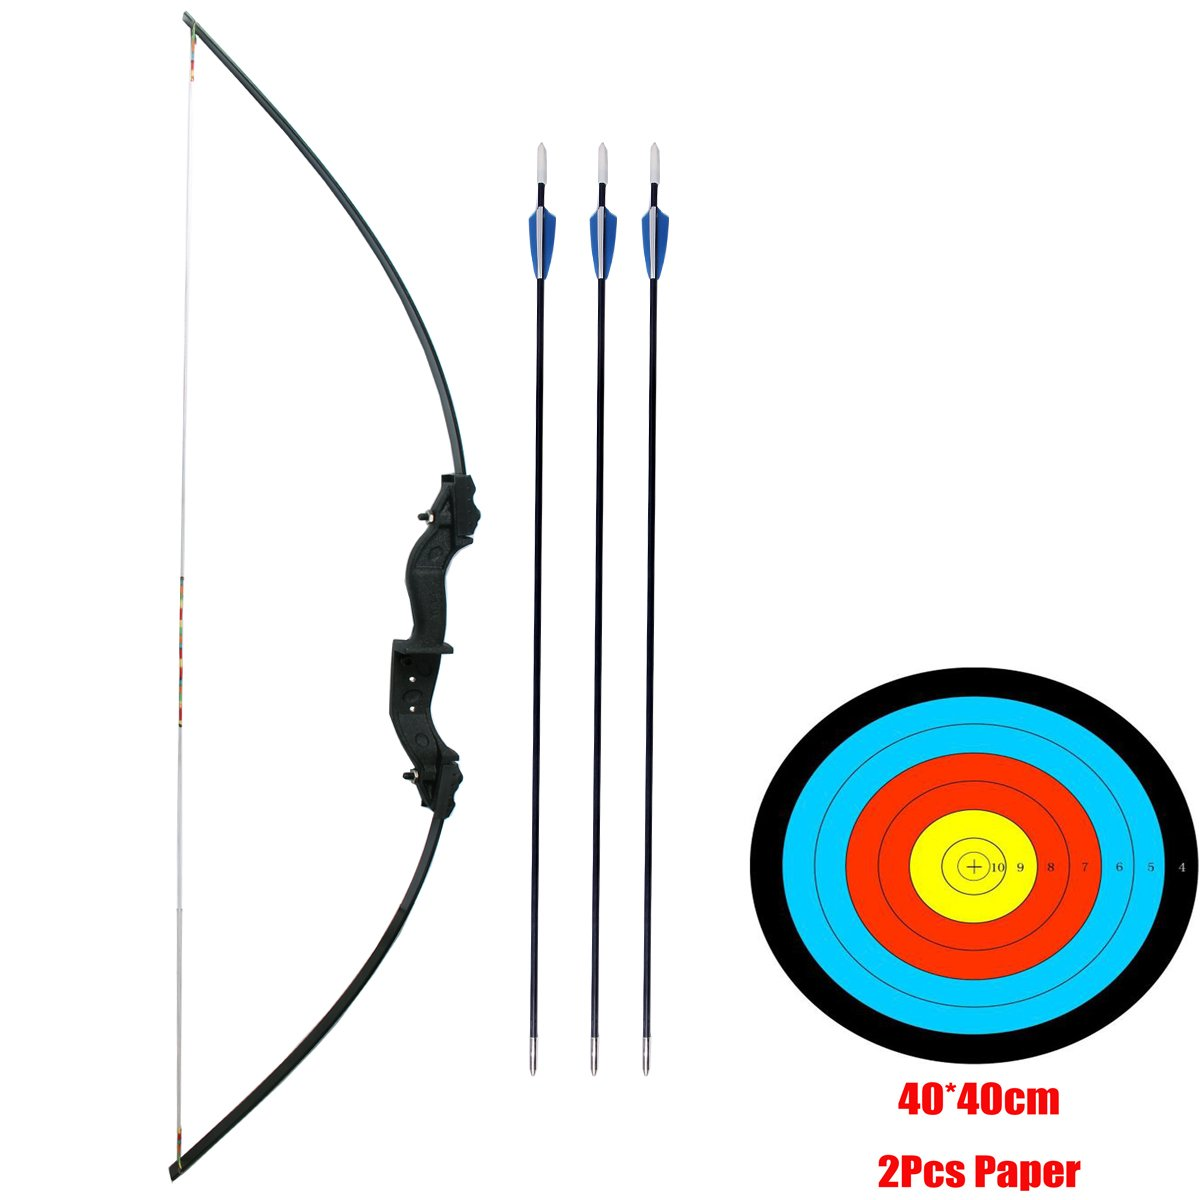 PG1ARCHERY Takedown Bow and Arrow Set, 51'' Hunting Targeting Practice Archery Set for Kids Youth Junior Beginner Starter with Fiberglass Arrows & Target Paper